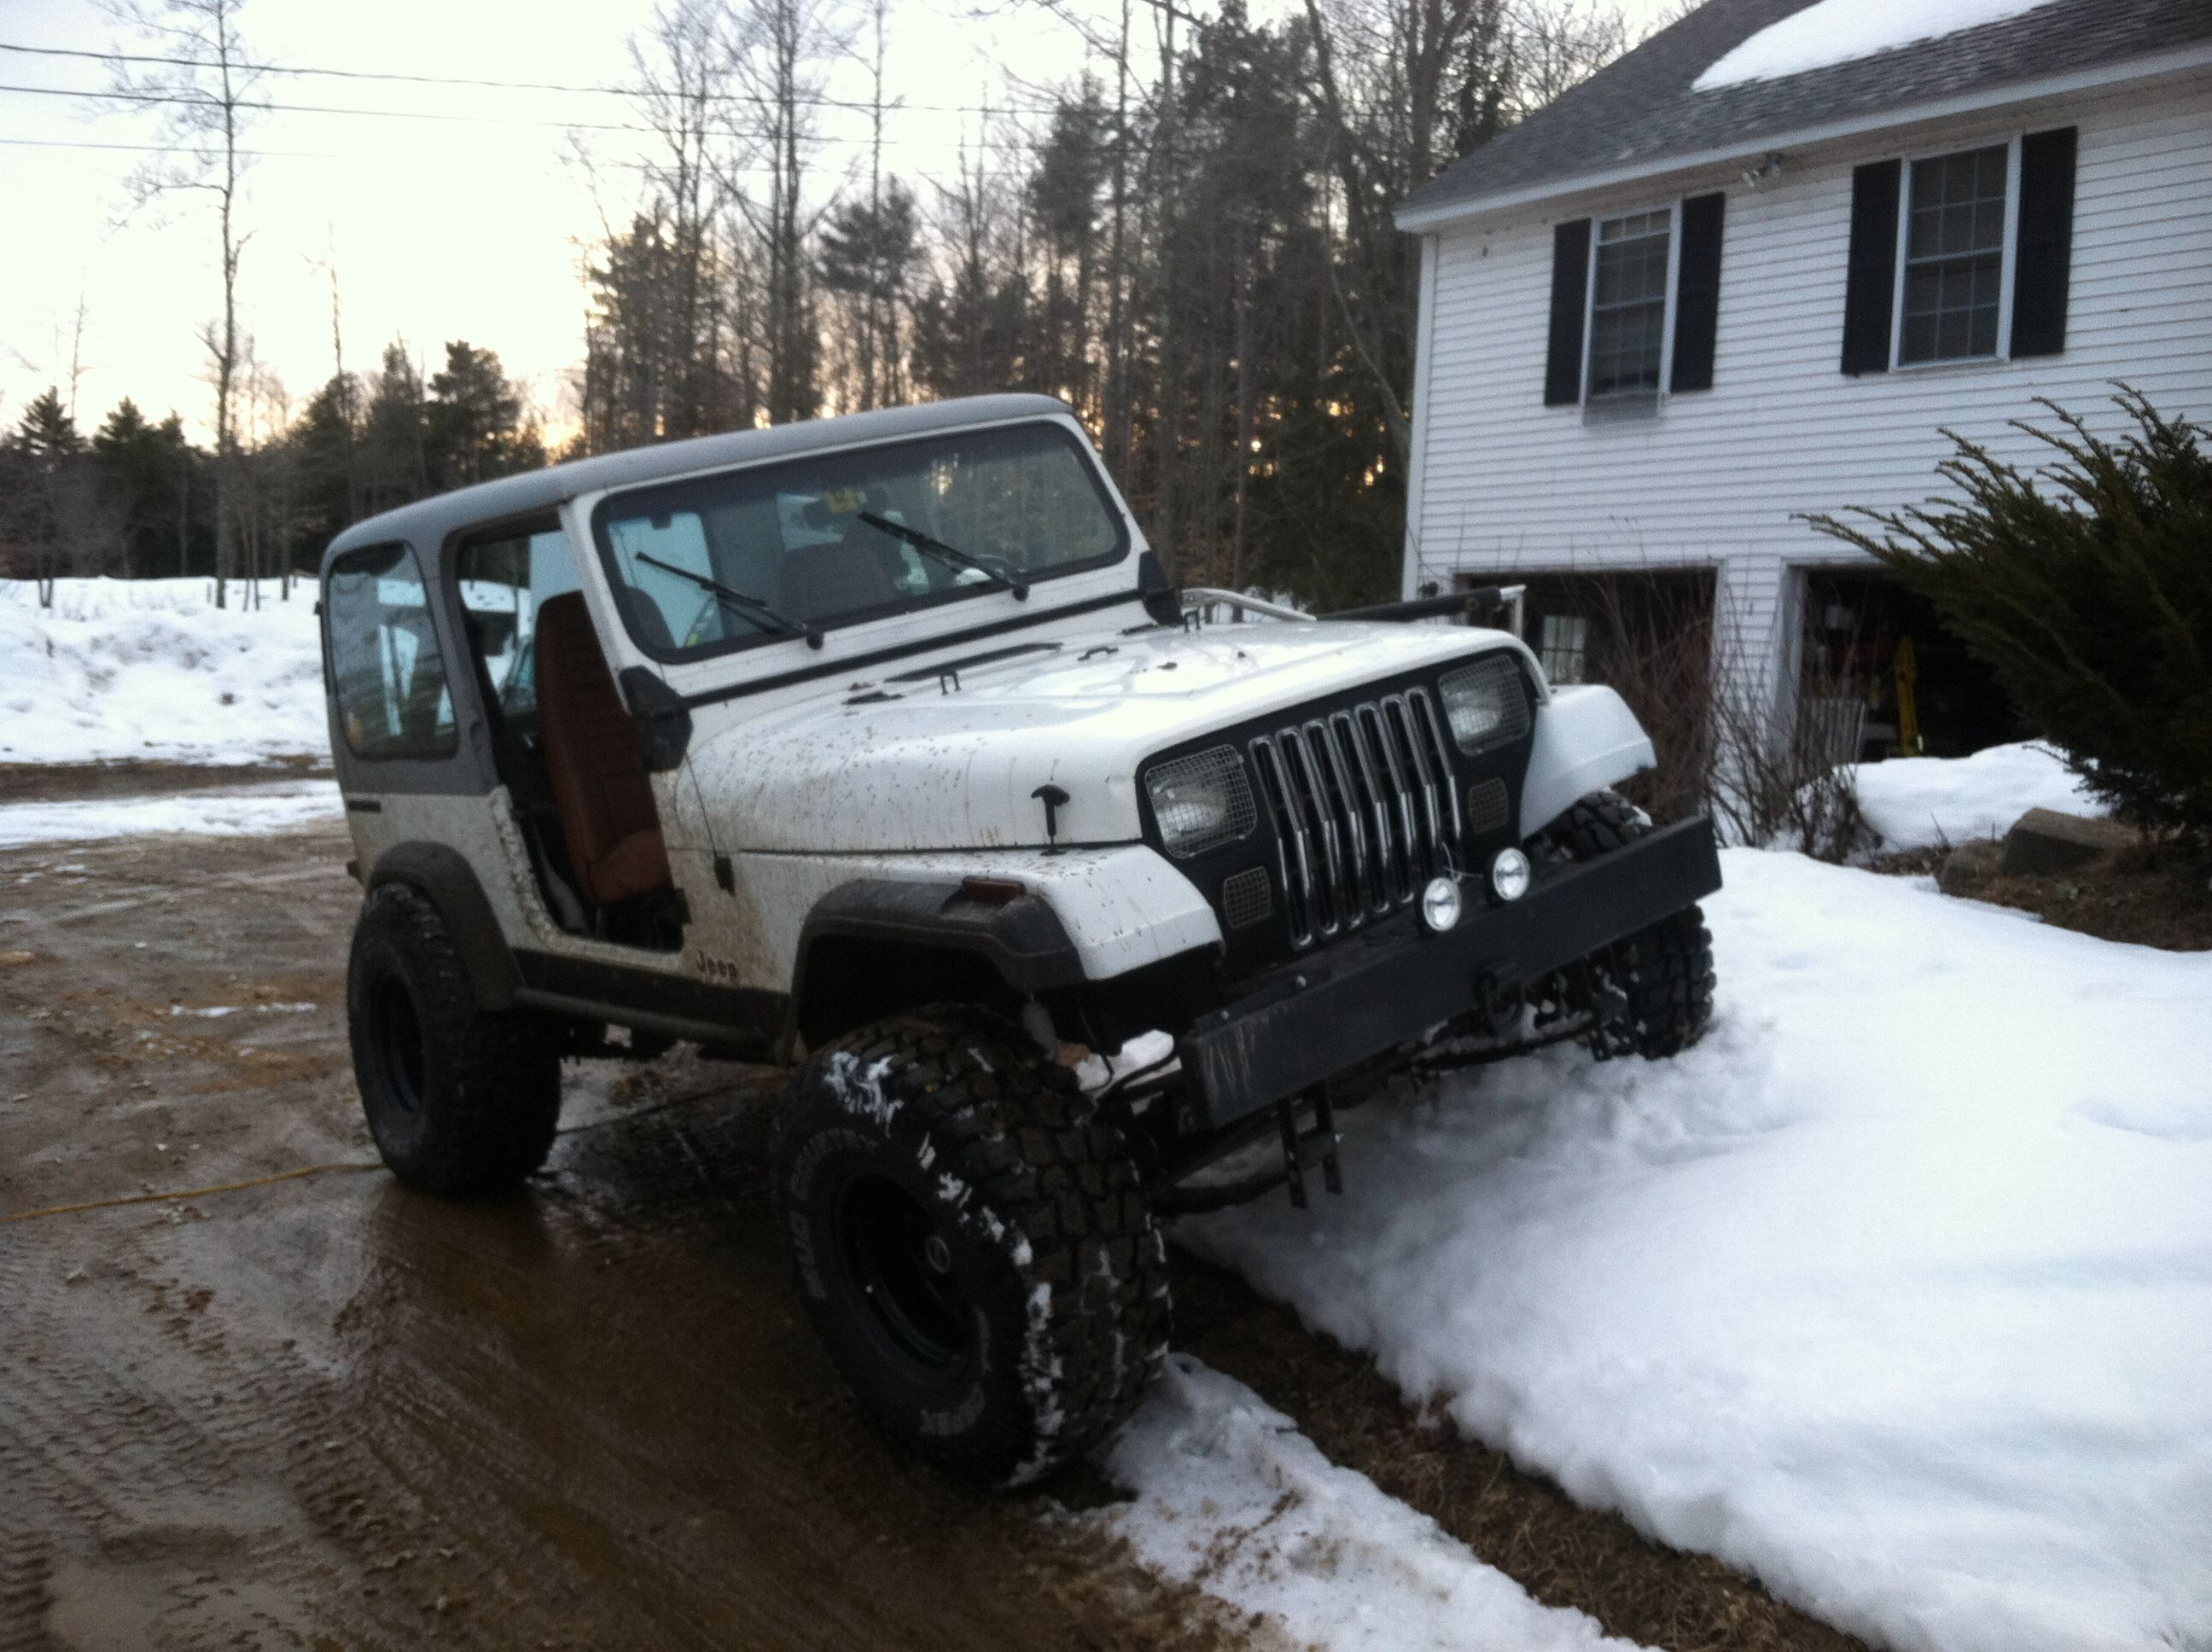 Betty the 89 yj was my second jeep she had a 4 inch sua lift with a